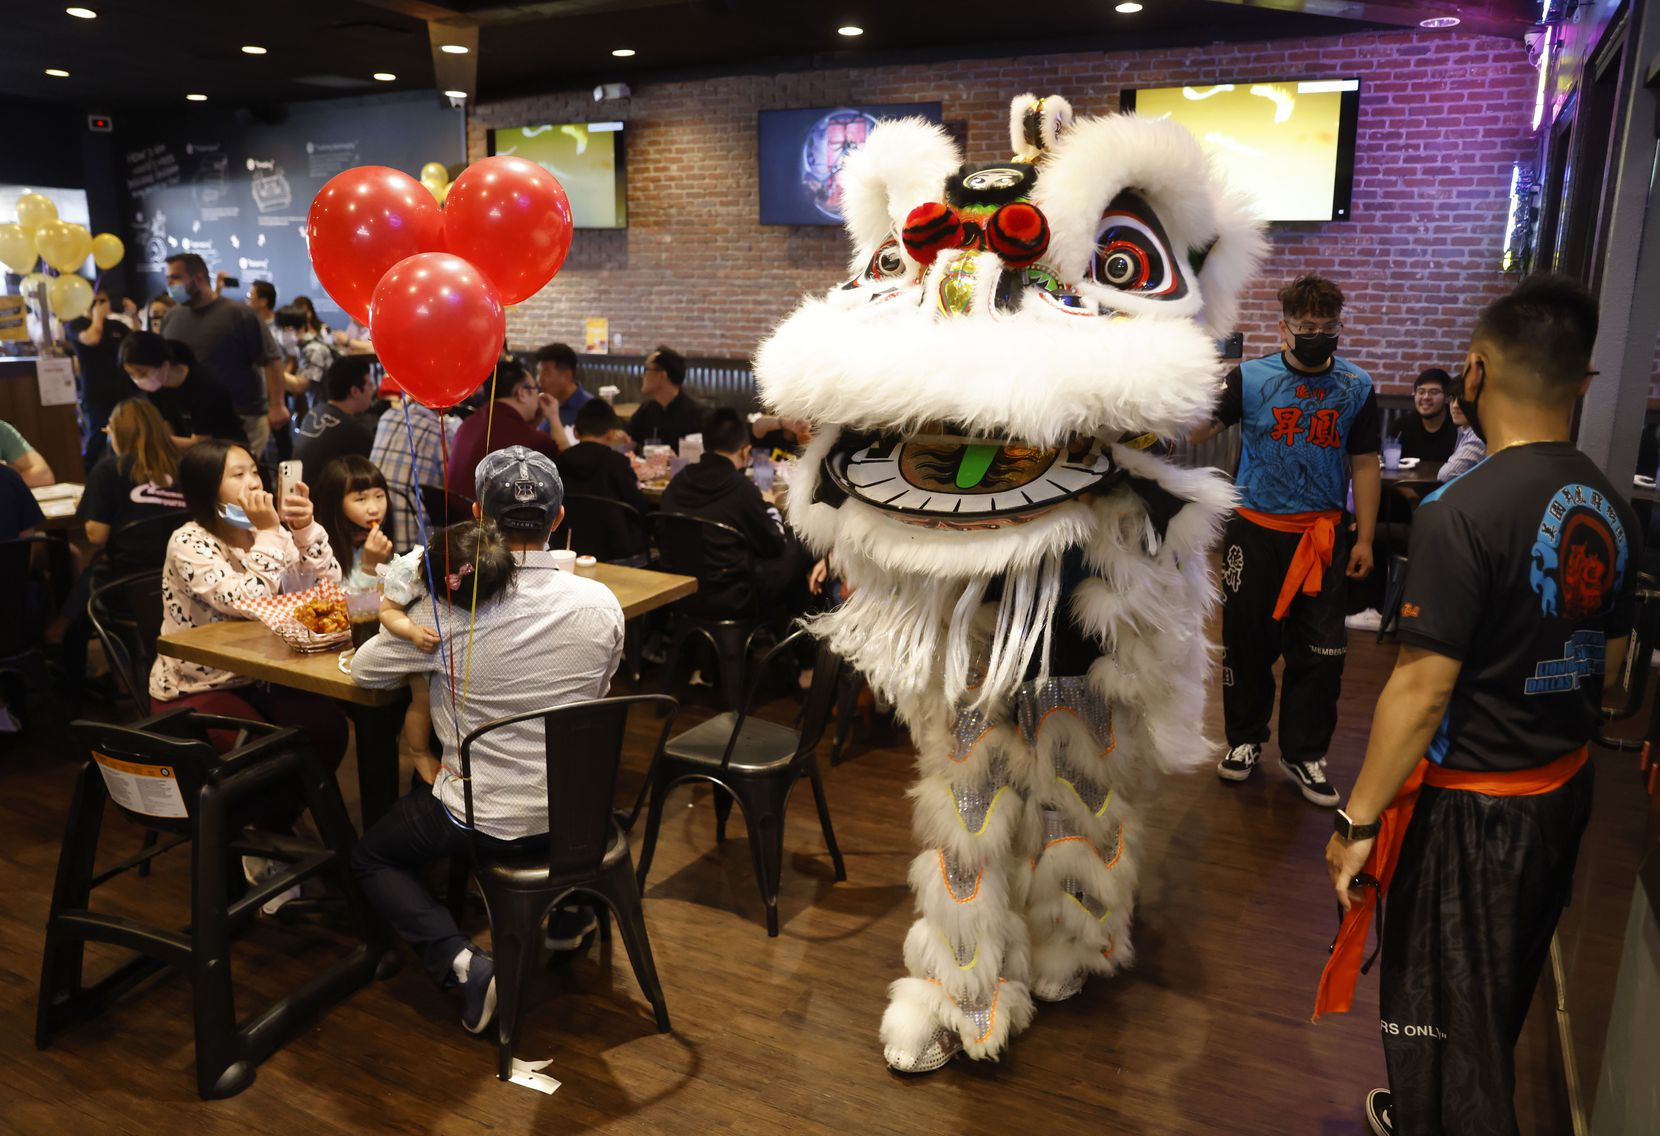 Customers watch as costumed entertainers make their way through the dining area of BB.Q Chicken during a grand opening event.